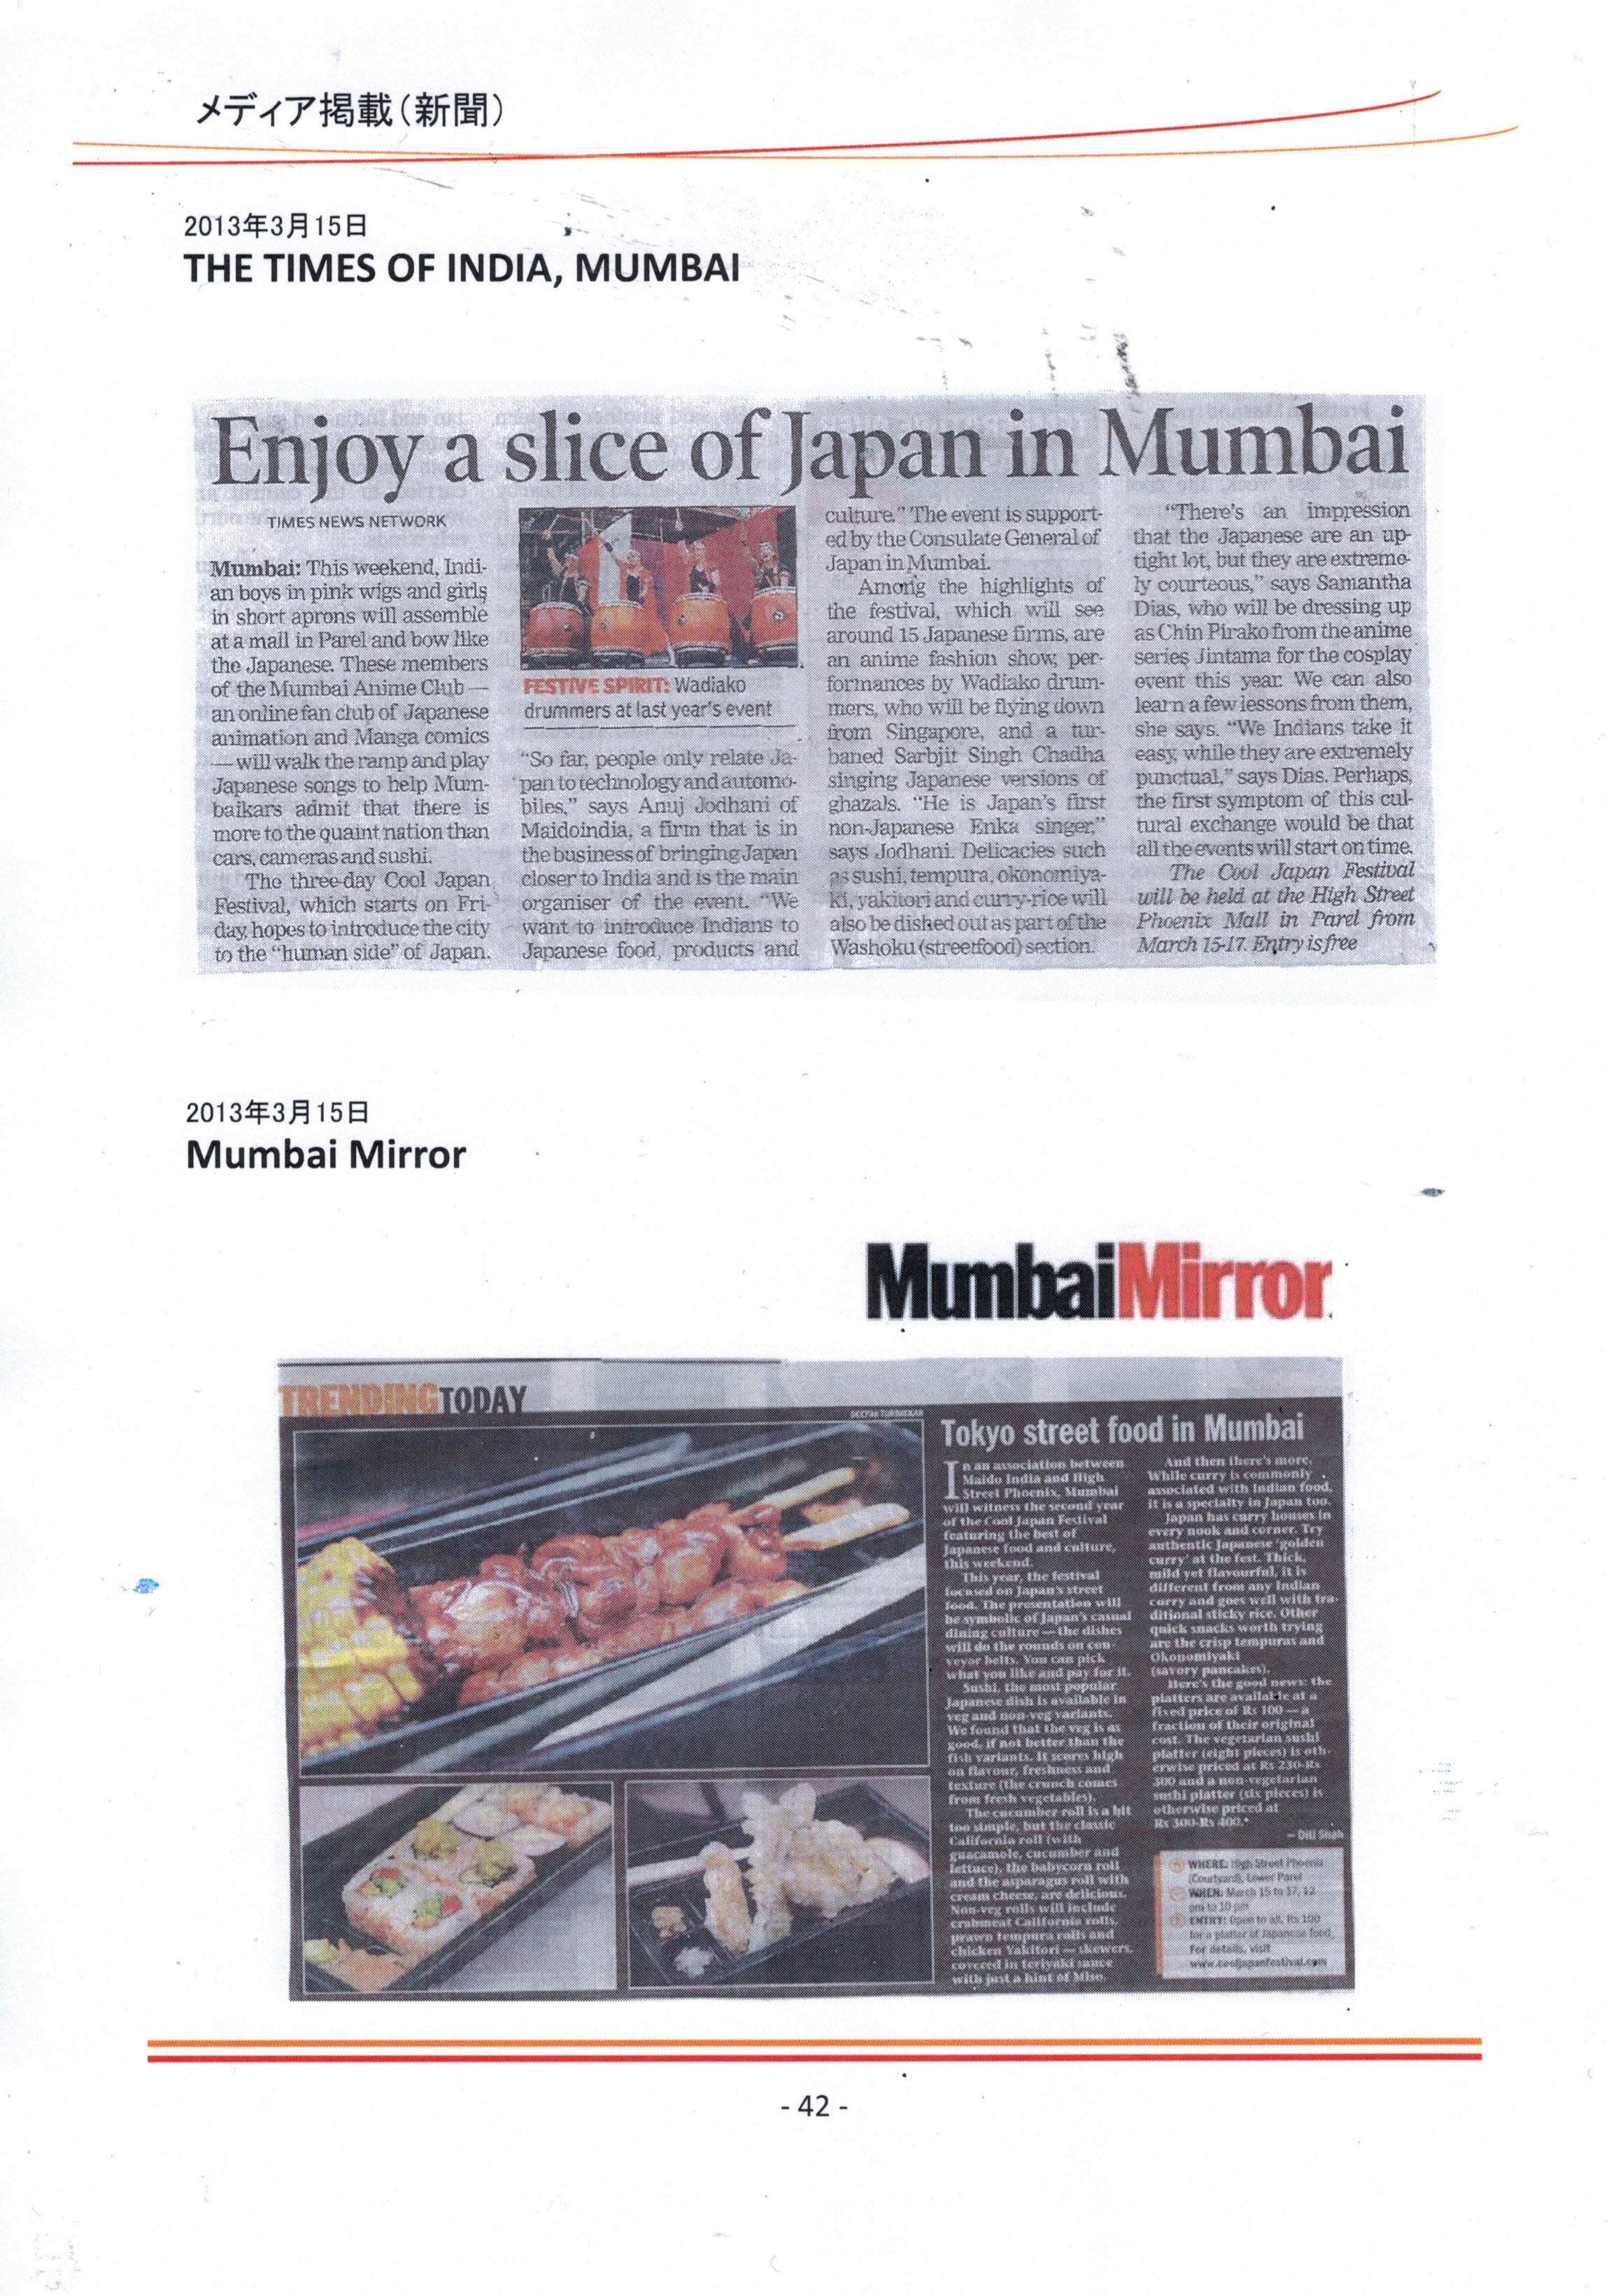 THE-TIMES-OF-INDIA-@INDIA-15-Mar-2013